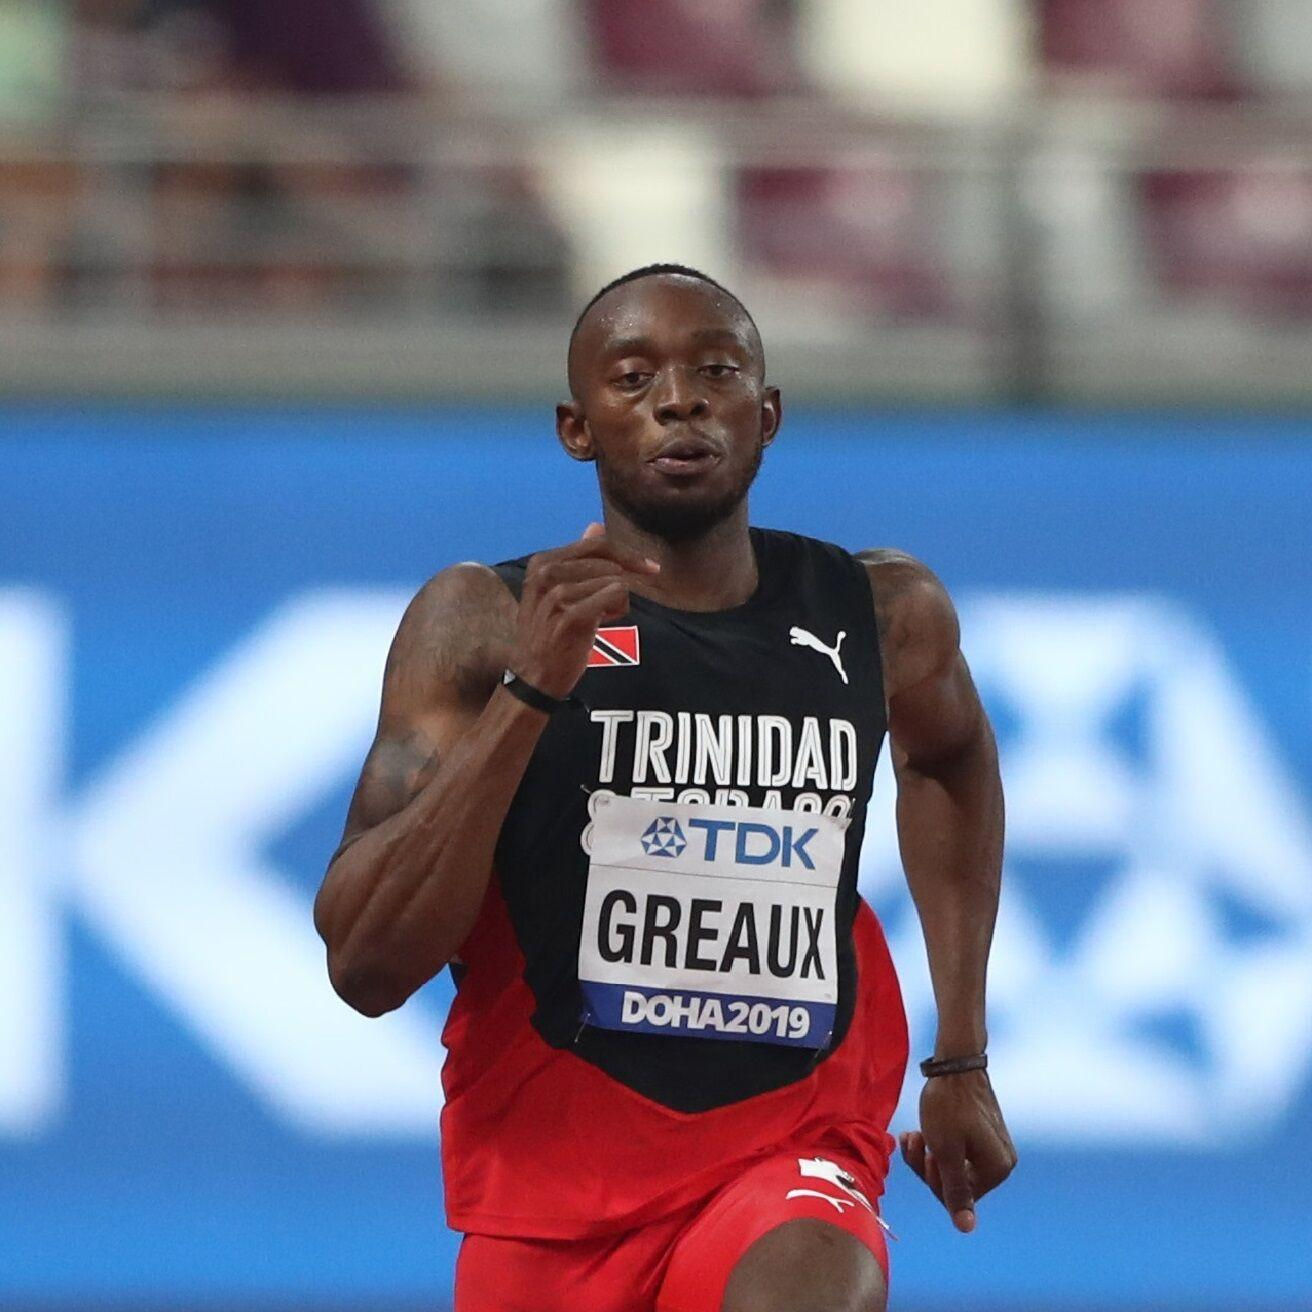 KEEN TO INFLUENCE: Trinidad and Tobago sprinter Kyle Greaux.  Getty Images for World Athletics